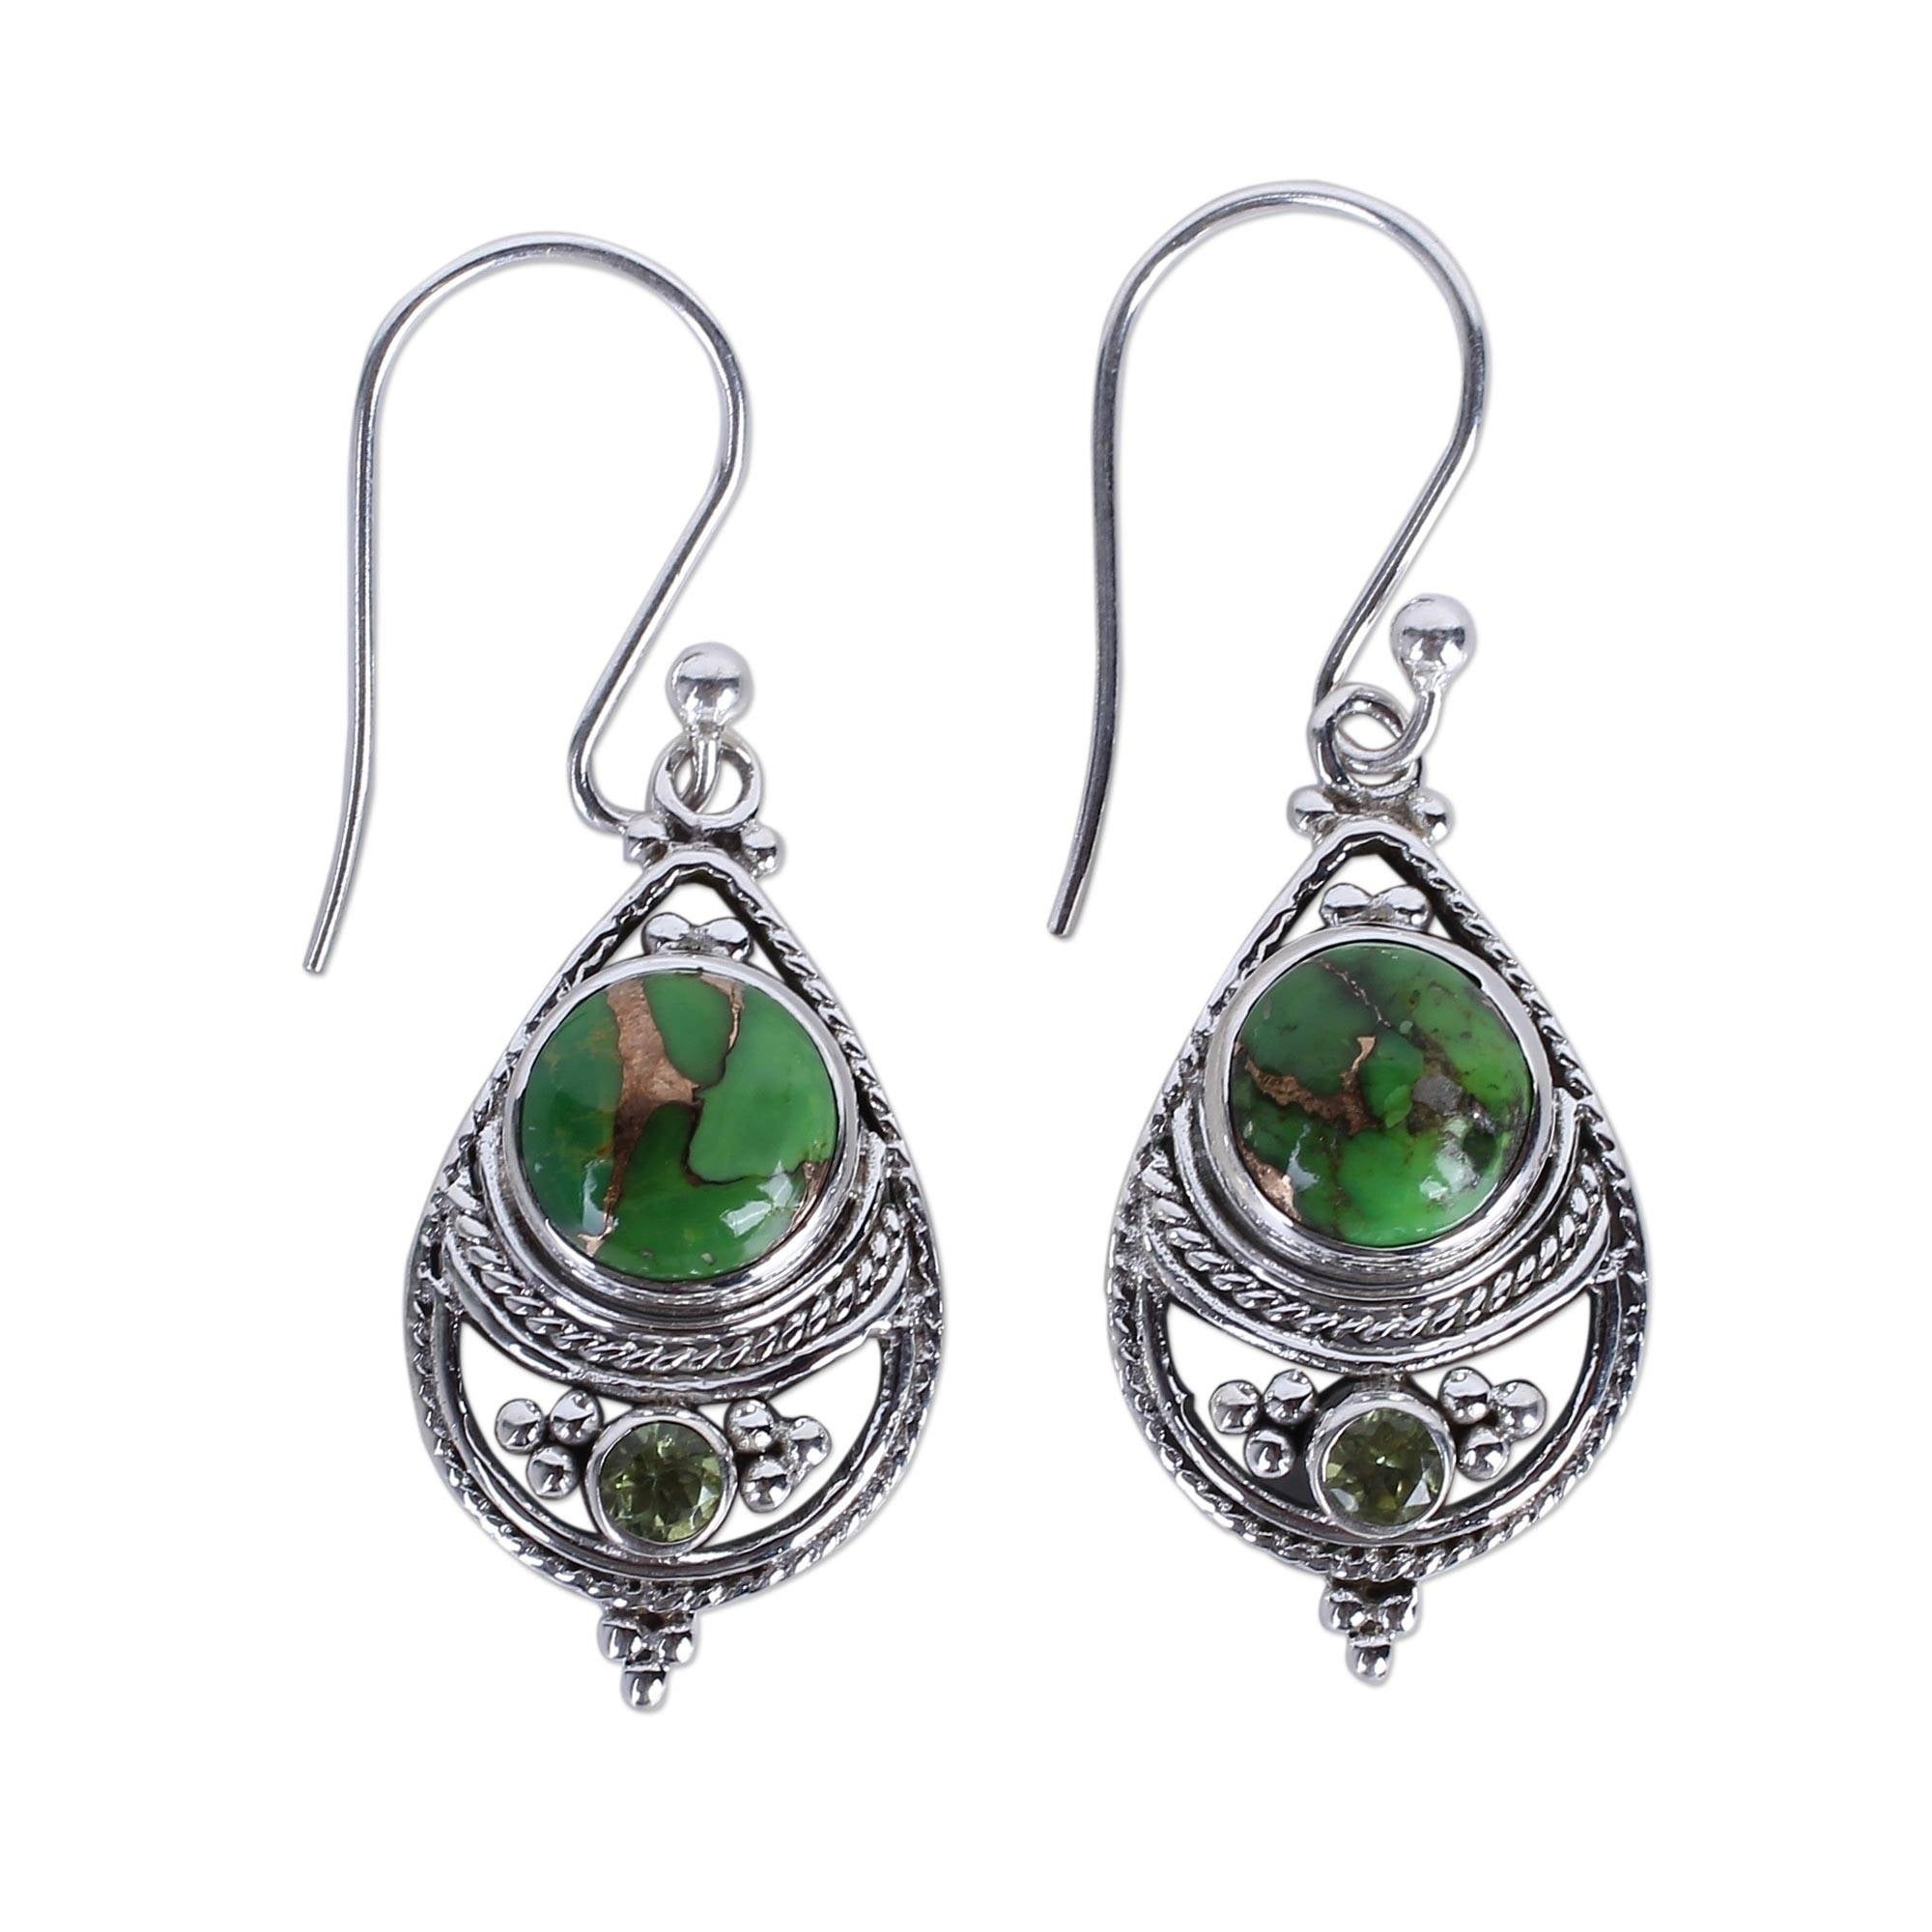 Buy More Earrings Online at Overstock.com | Our Best Earrings Deals